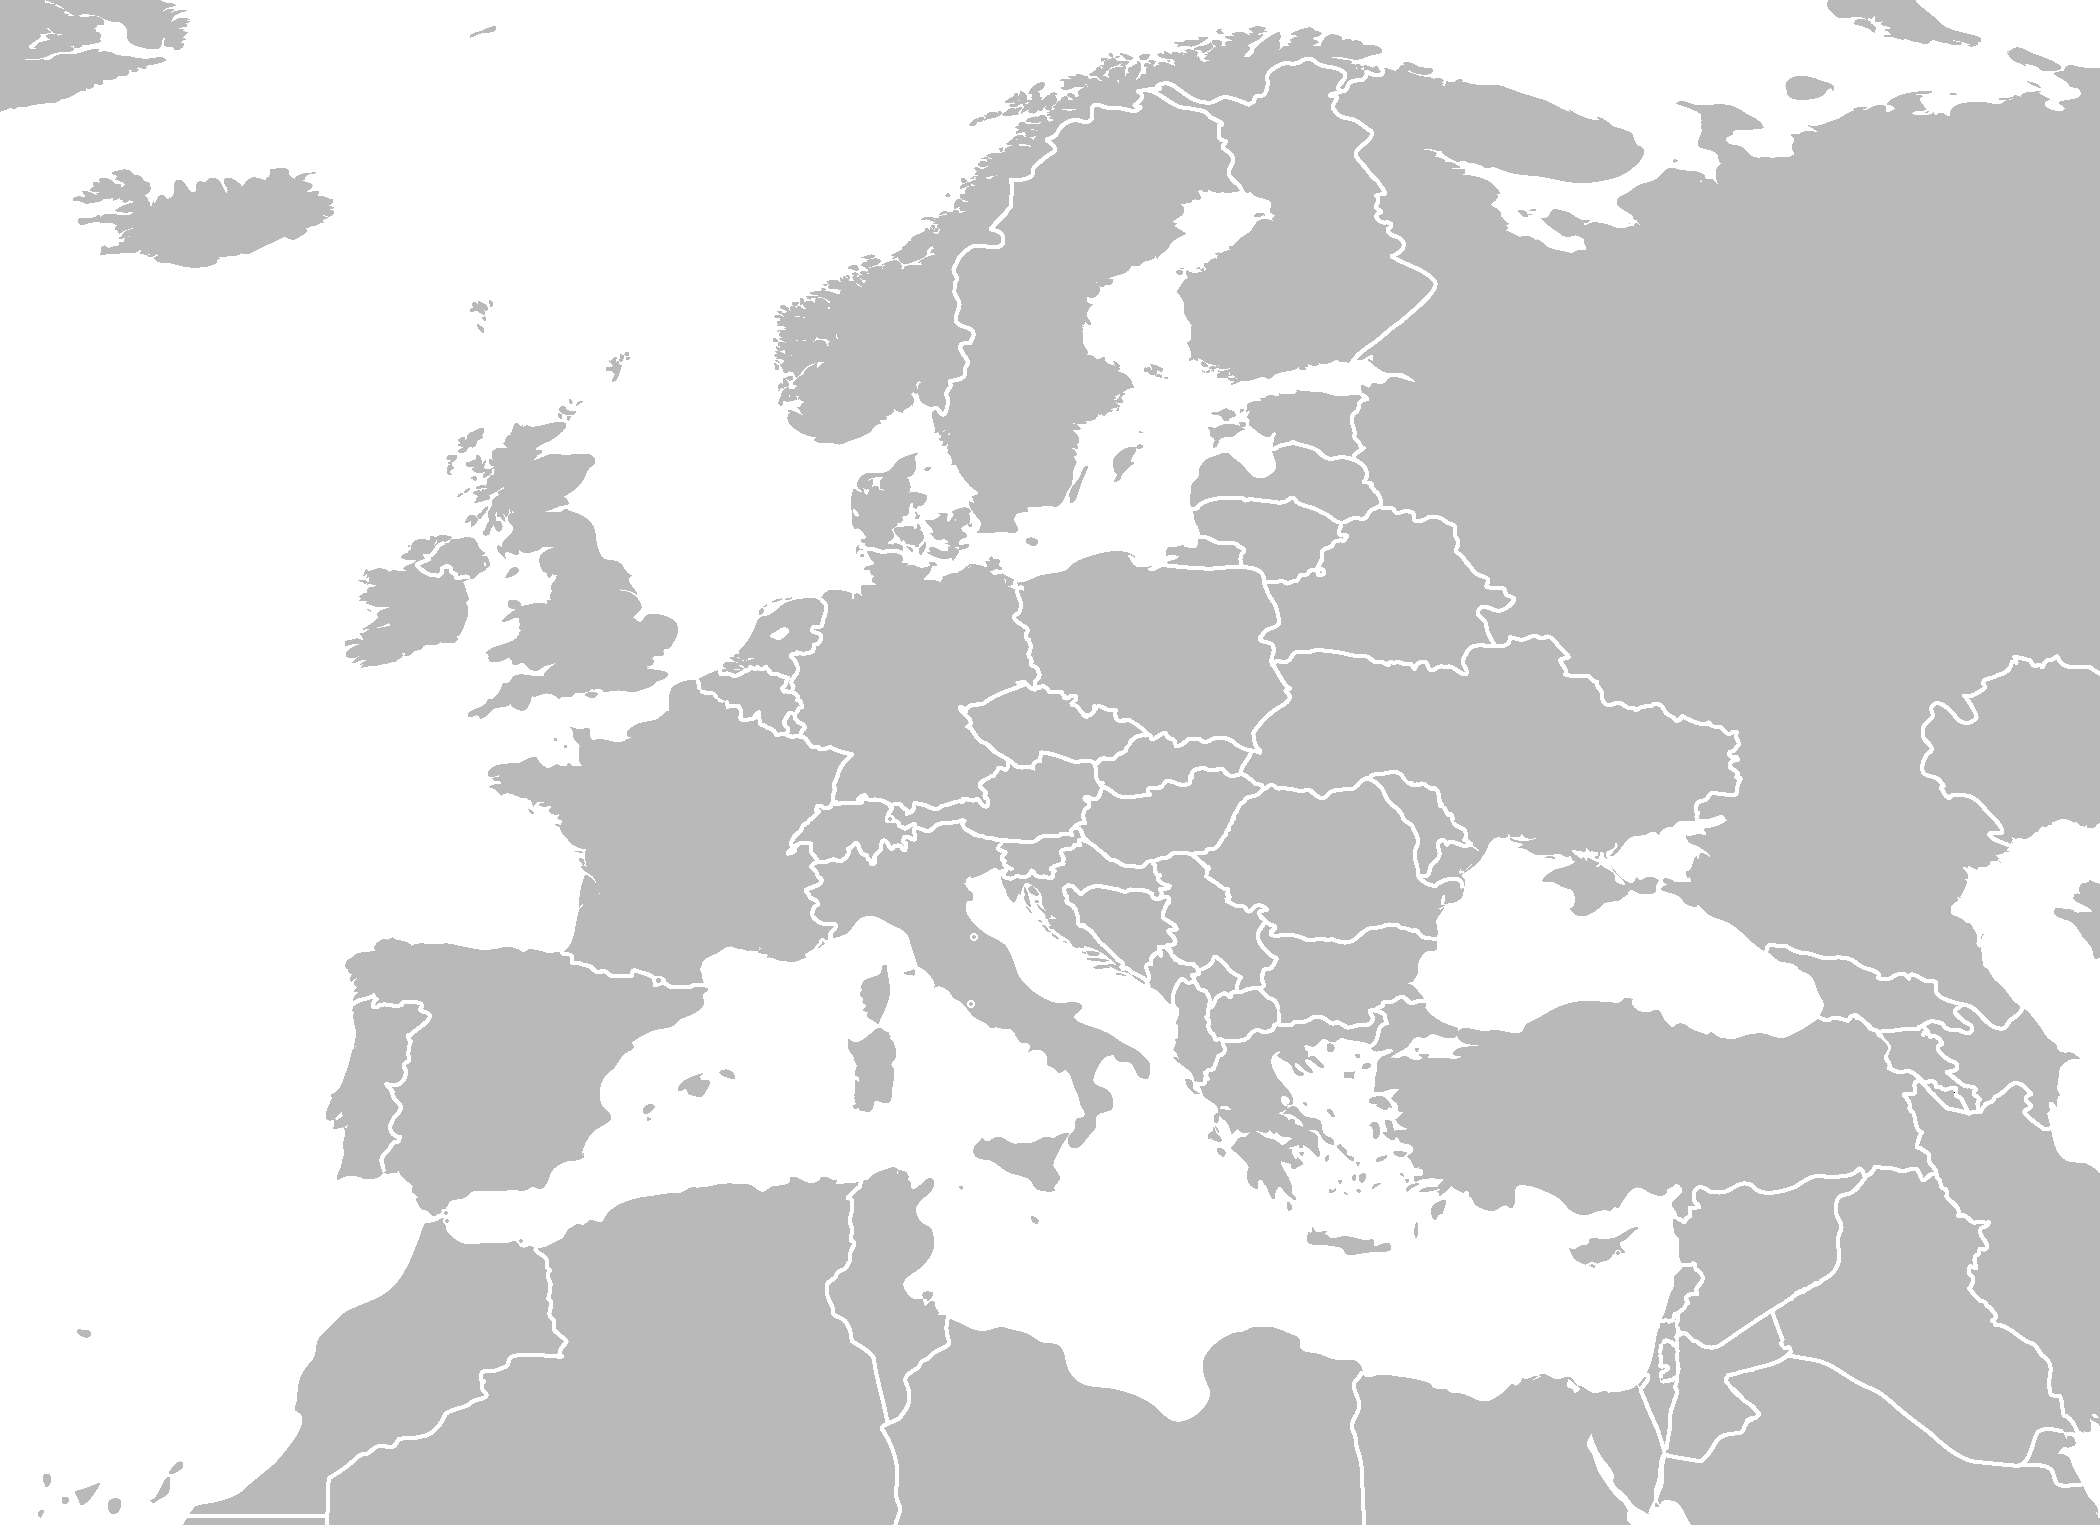 Blank Map Of Europe And North Africa